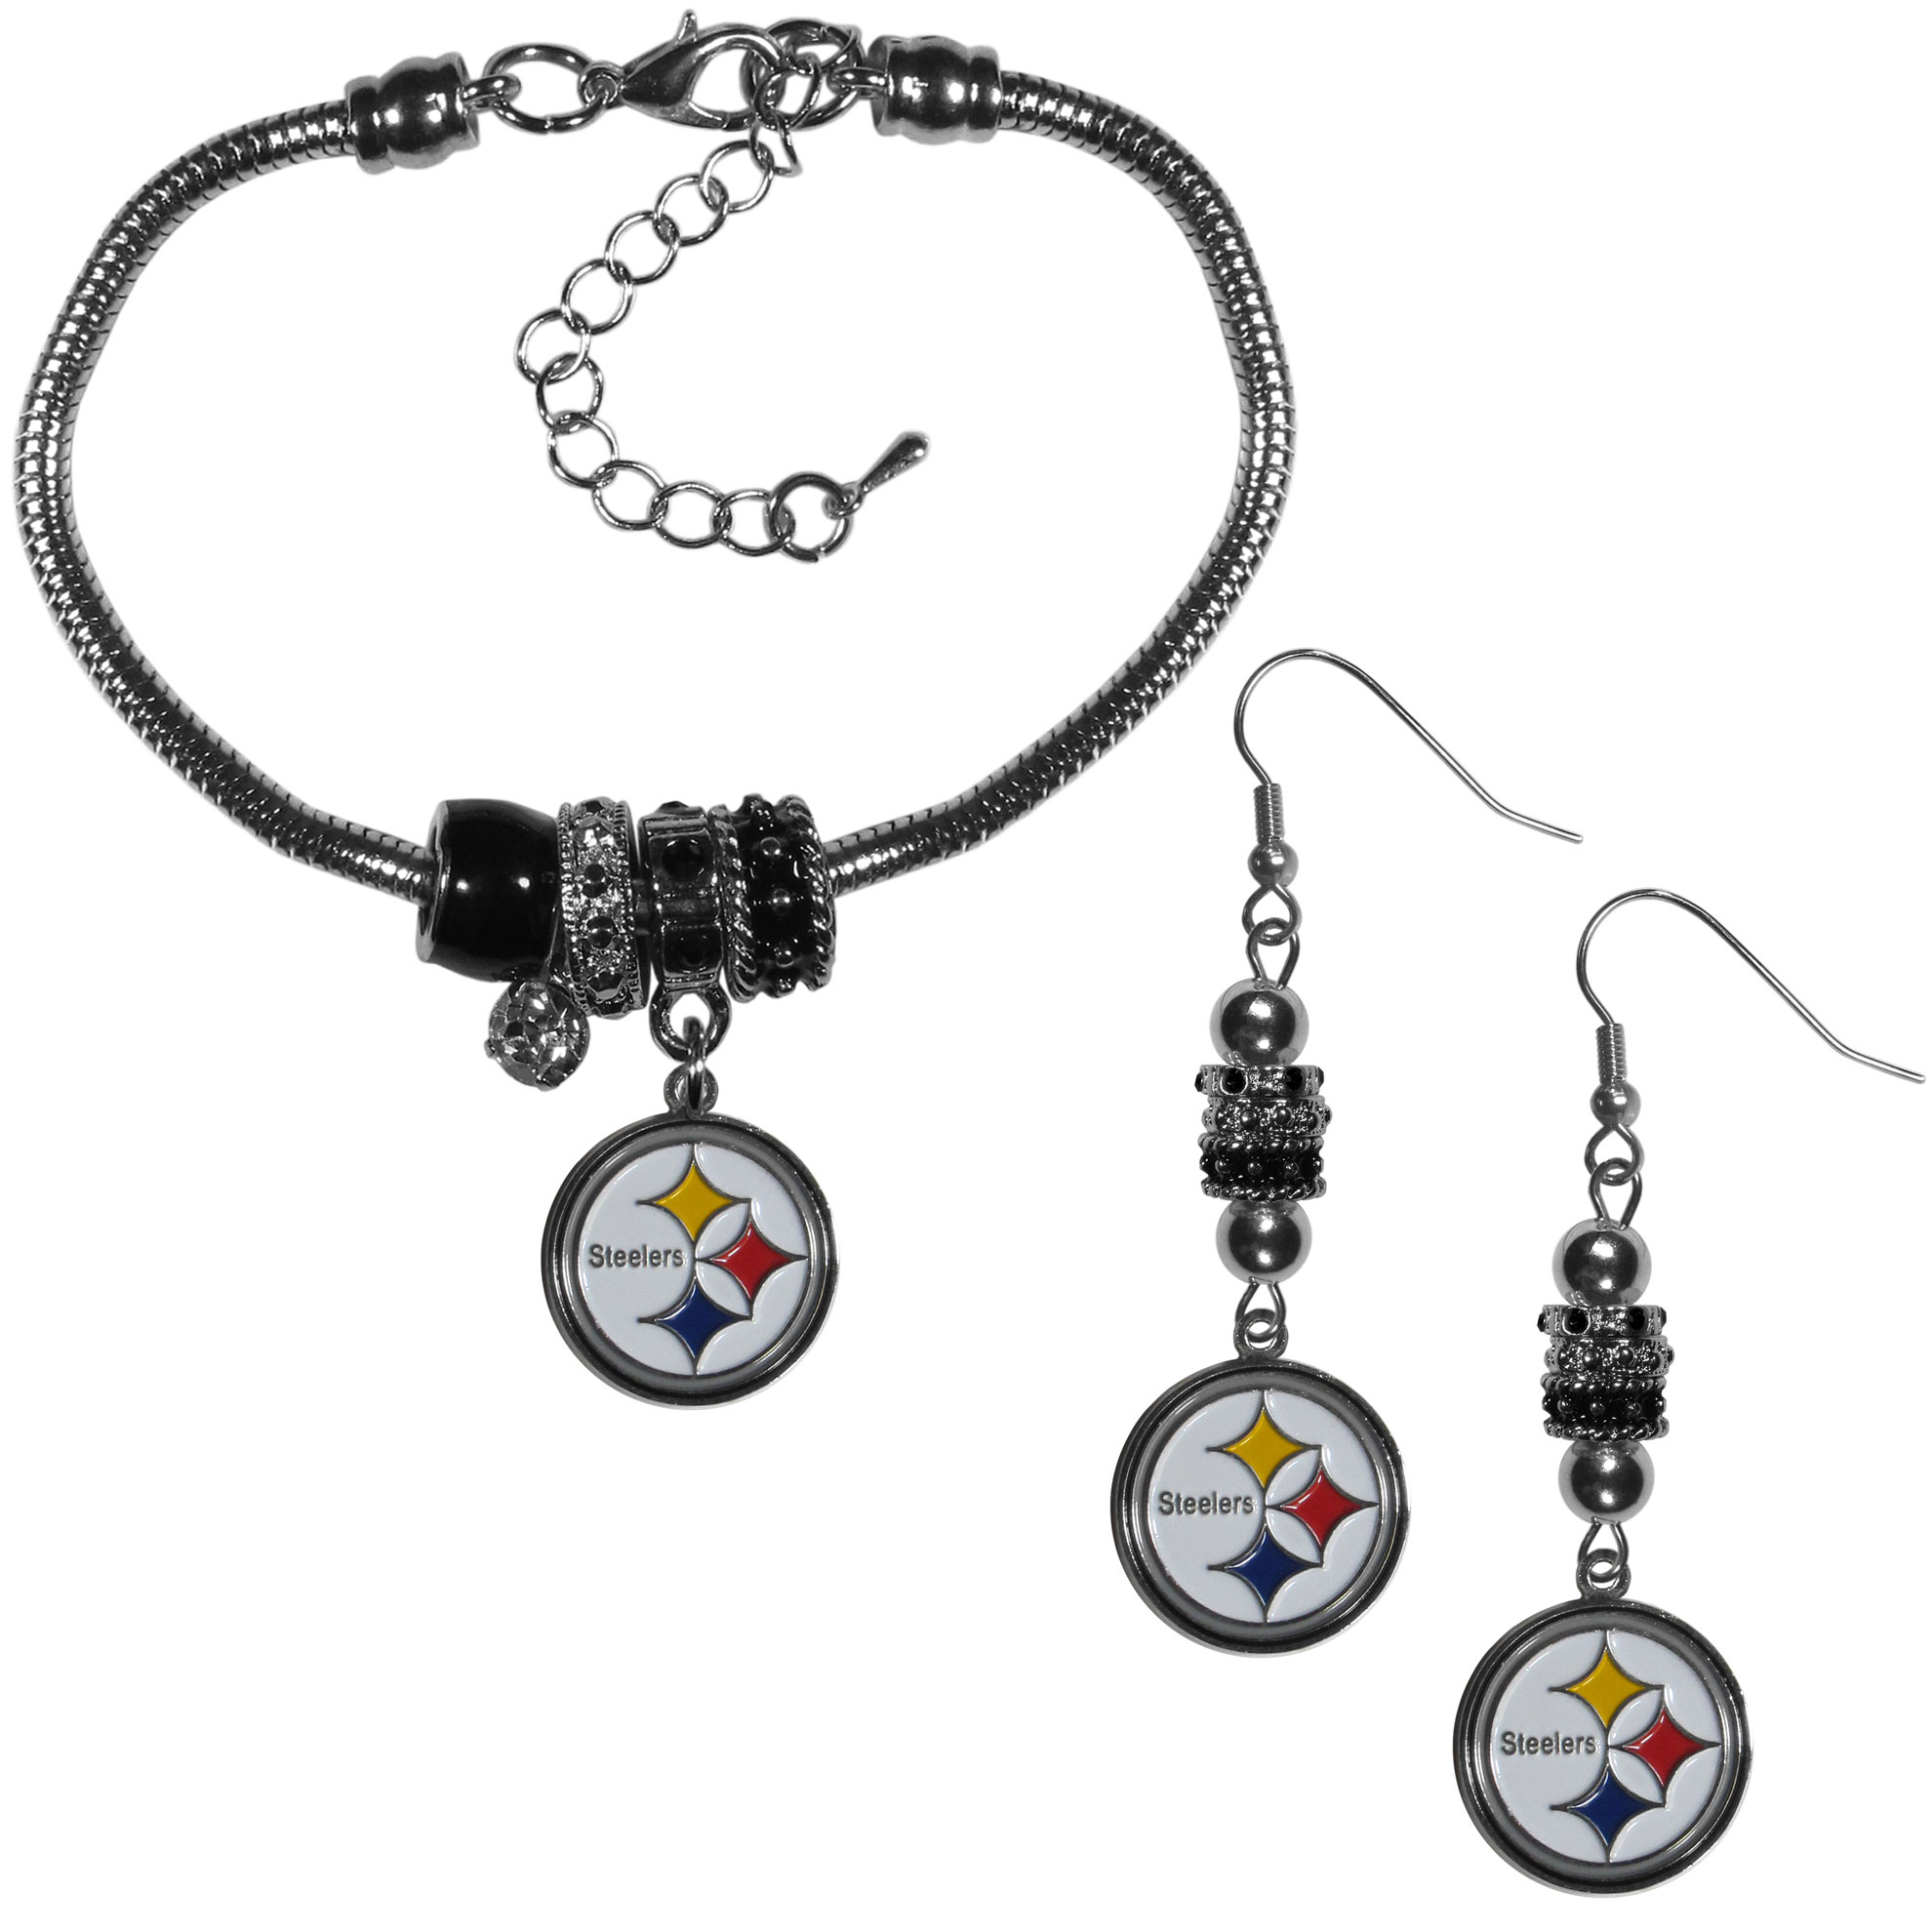 Pittsburgh Steelers Euro Bead Earrings and Bracelet Set - We combine the popular Euro bead style with your love of the Pittsburgh Steelers with this beautiful jewelry set that includes earrings and a matching bracelet. The stylish earrings feature hypoallergenic, nickel free fishhook posts and 3 team colored Euro beads and a metal team charm. The matching snake chain bracelet is 7.5 inches long with a 2 inch extender and 4 Euro beads with a rhinestone charm and team charm.